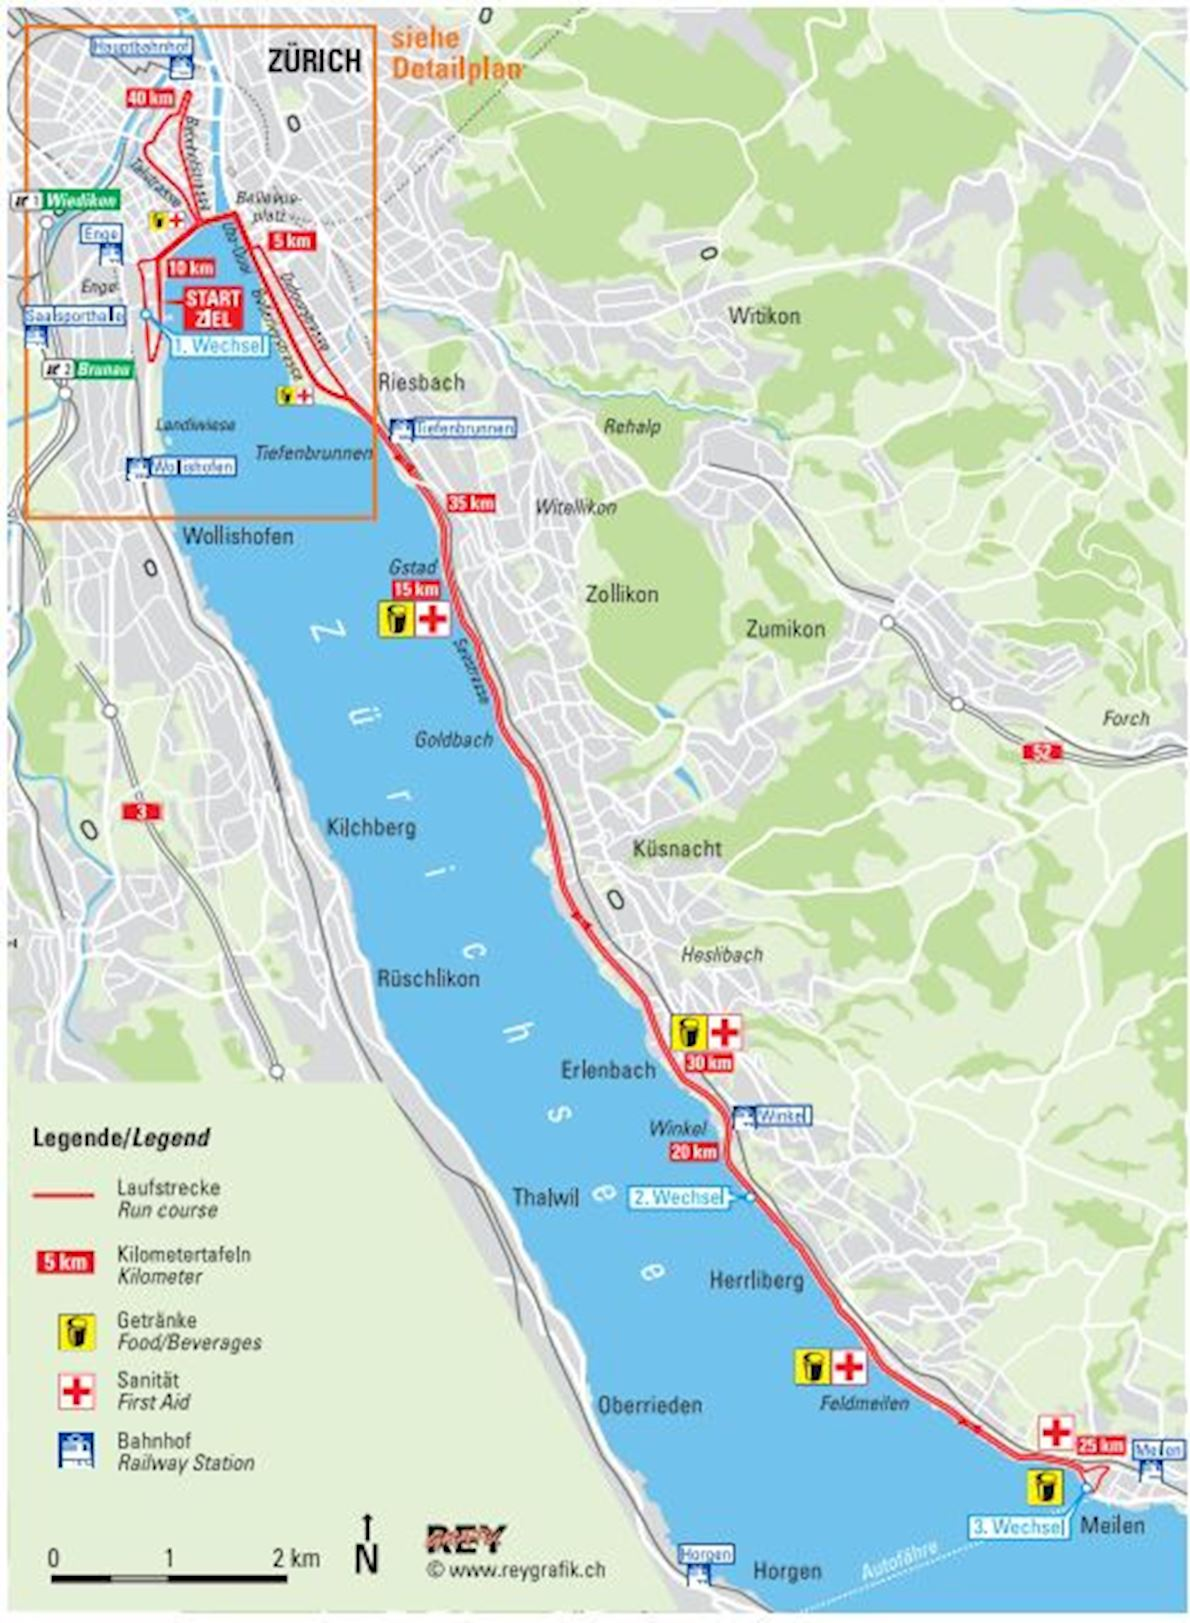 Zürich Marathon Route Map